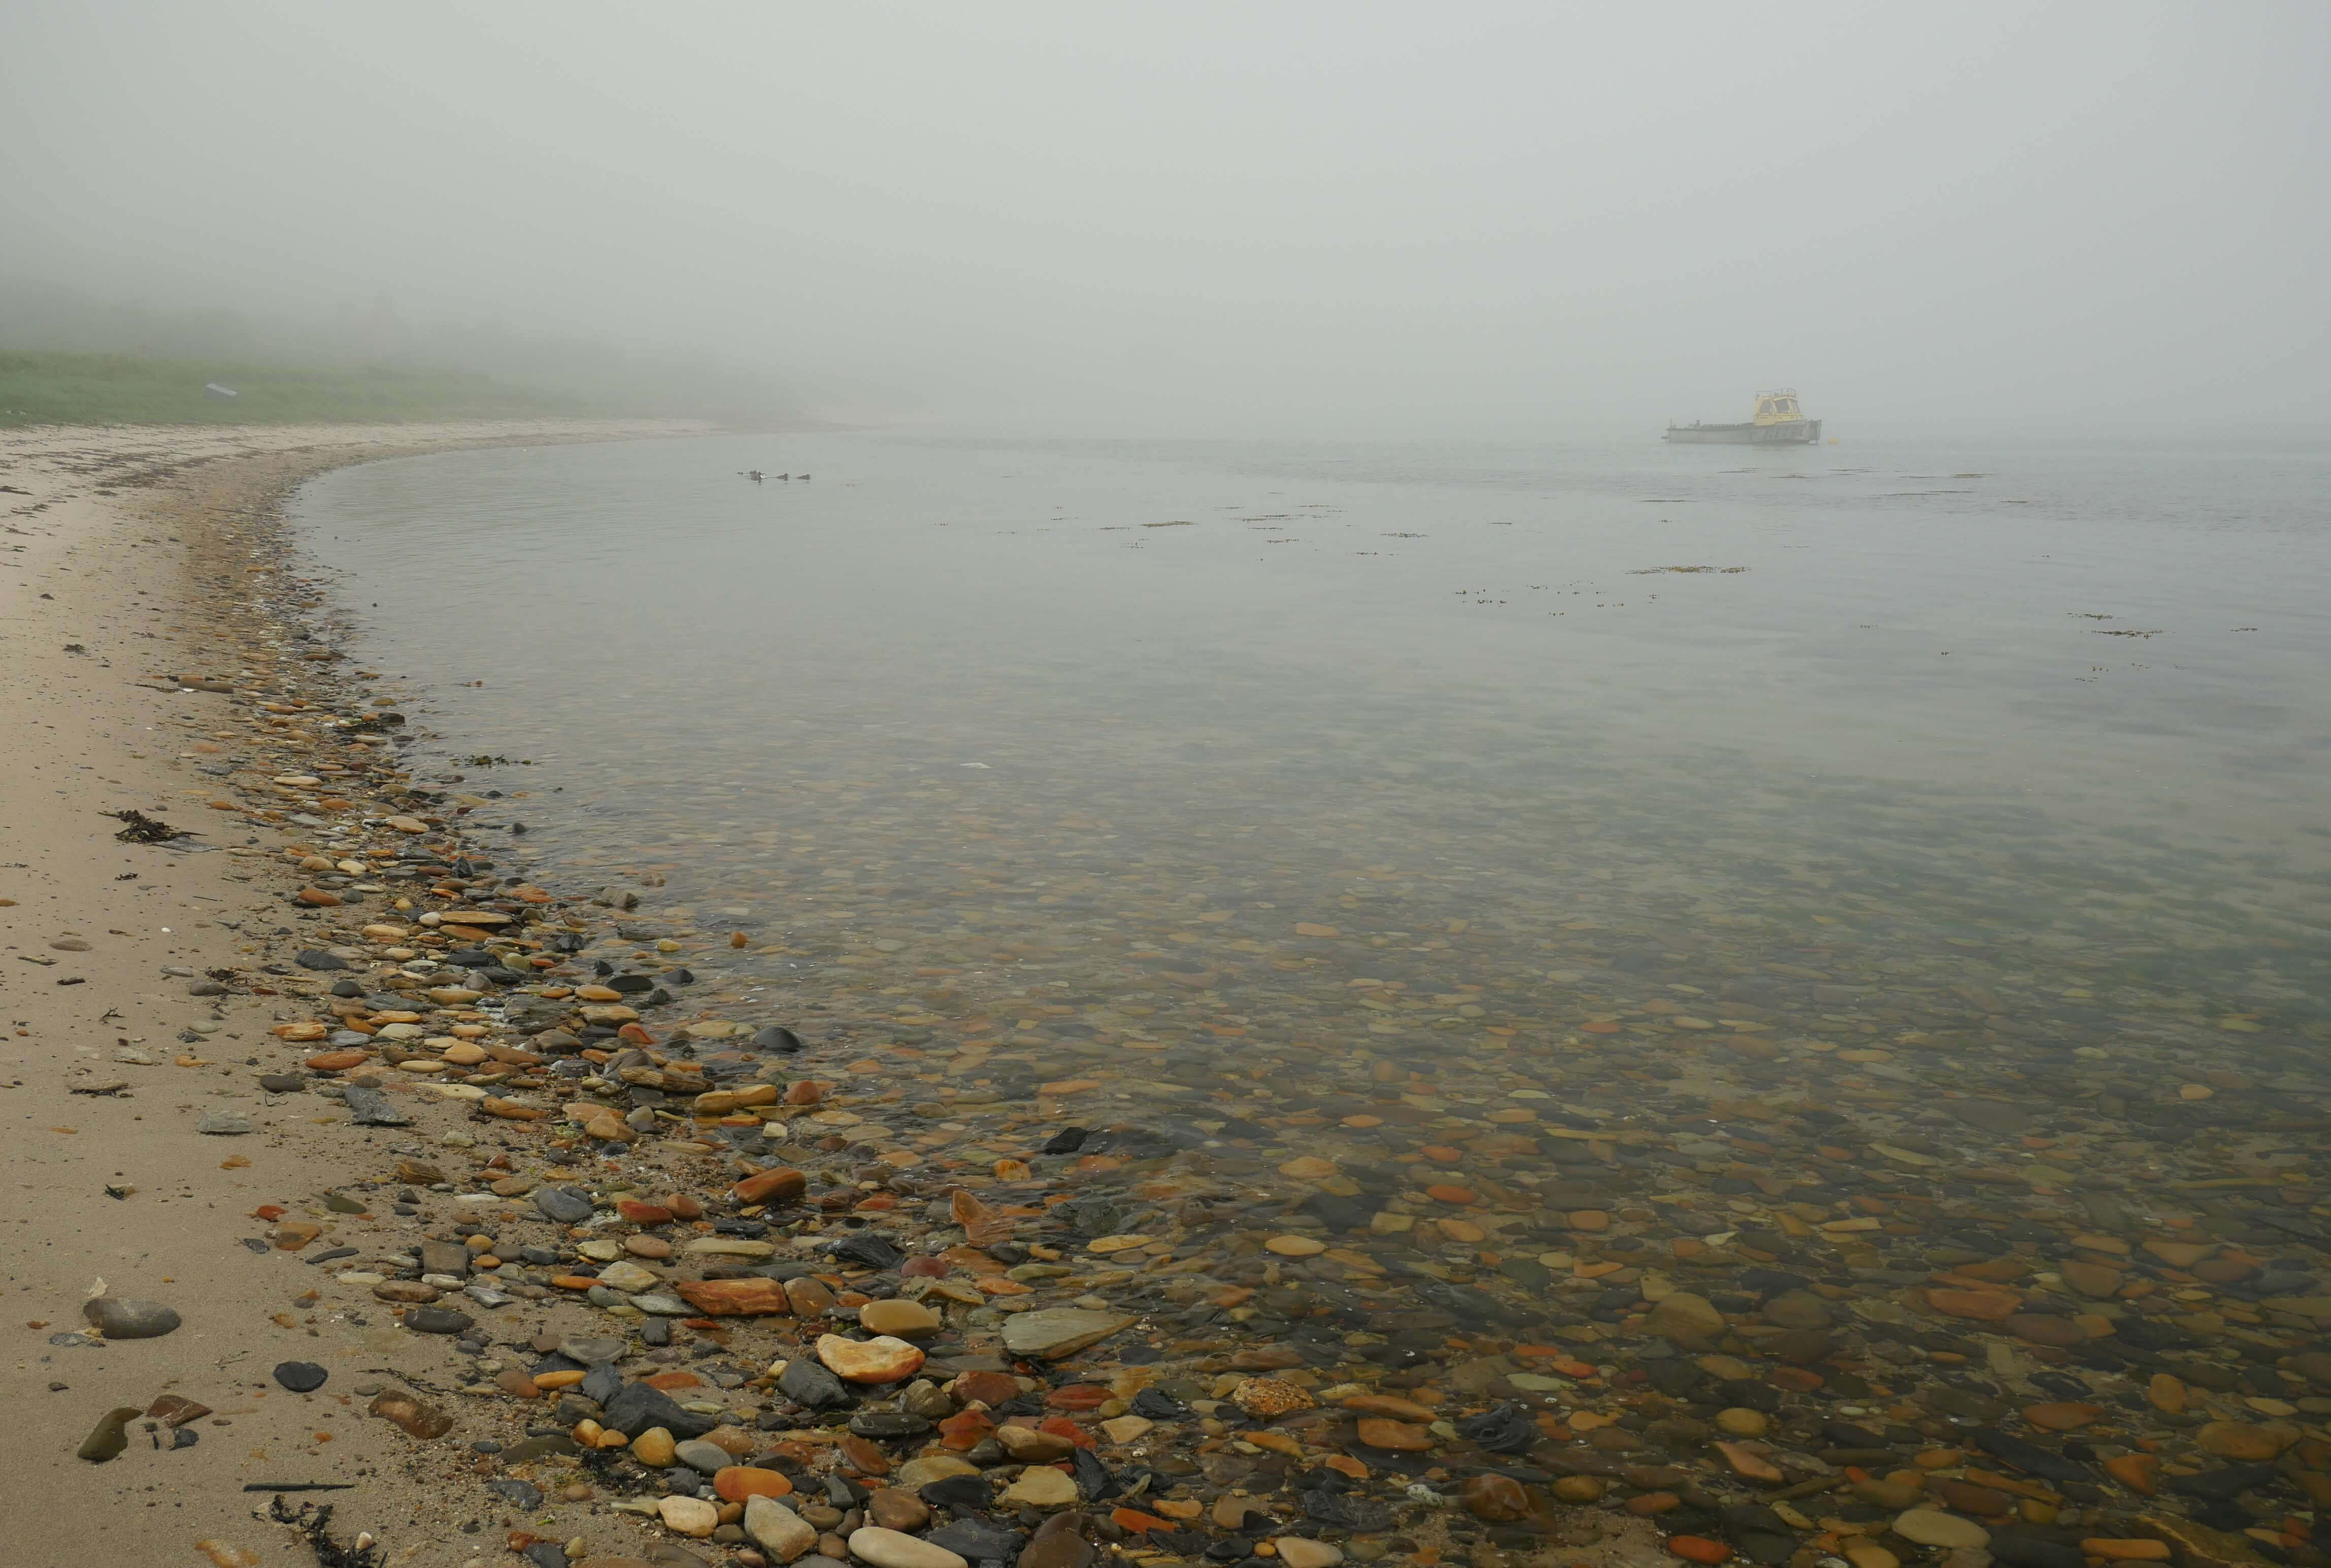 Misty beach, island of Hoy, Orkney, Scotland, UK